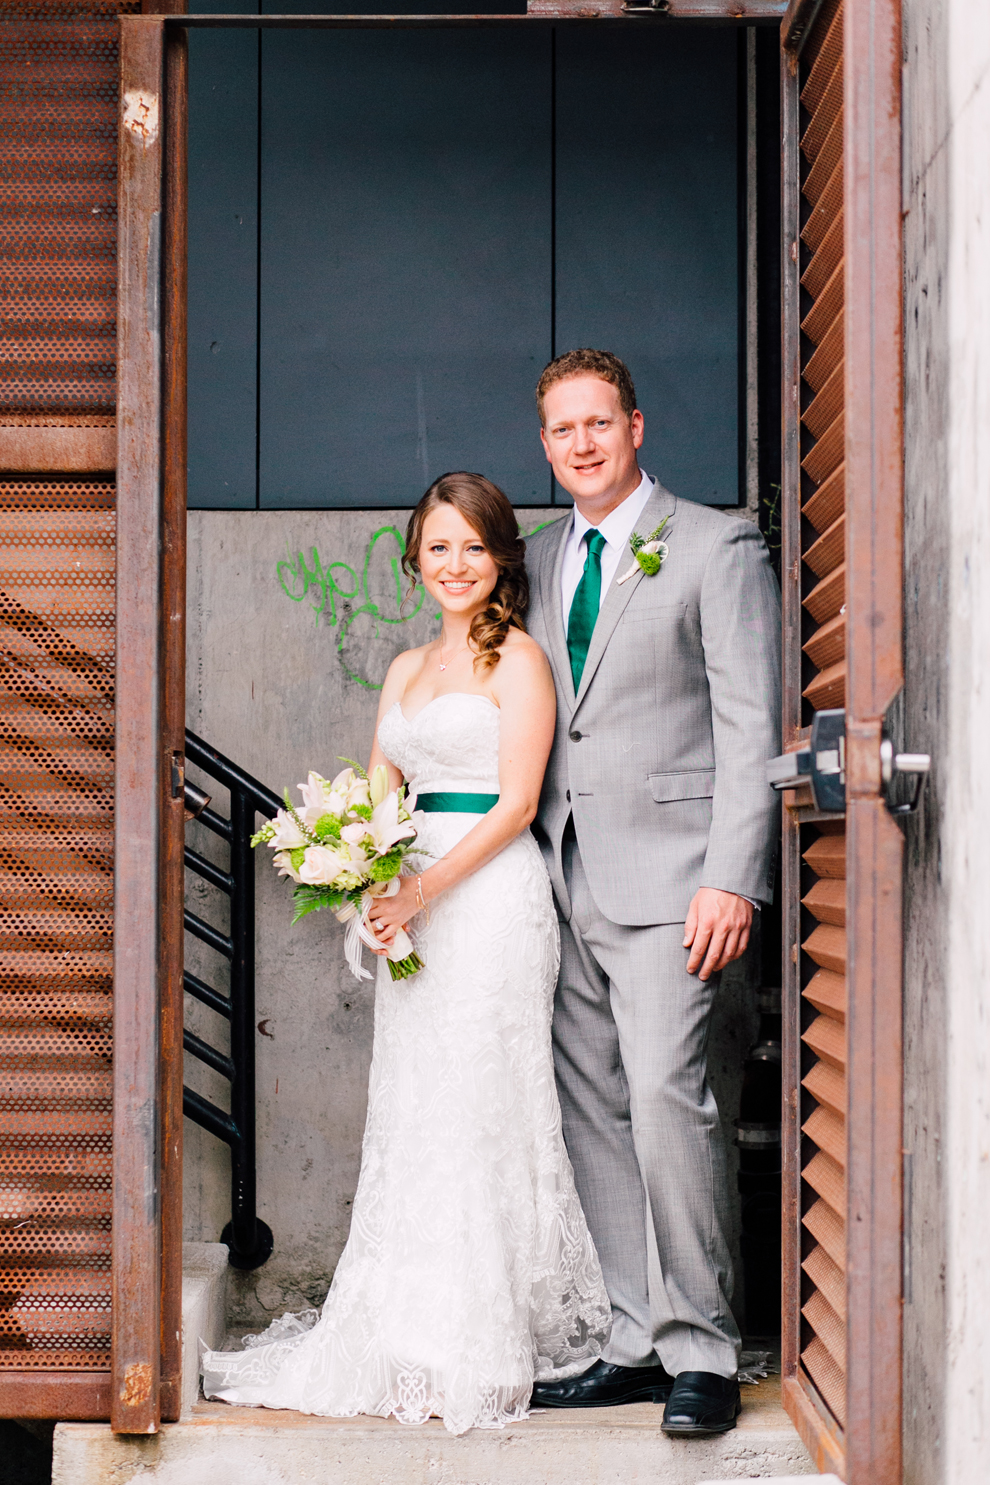 035-fremont-foundry-seattle-wedding-katheryn-moran-photography-anthony-kaitlin.jpg